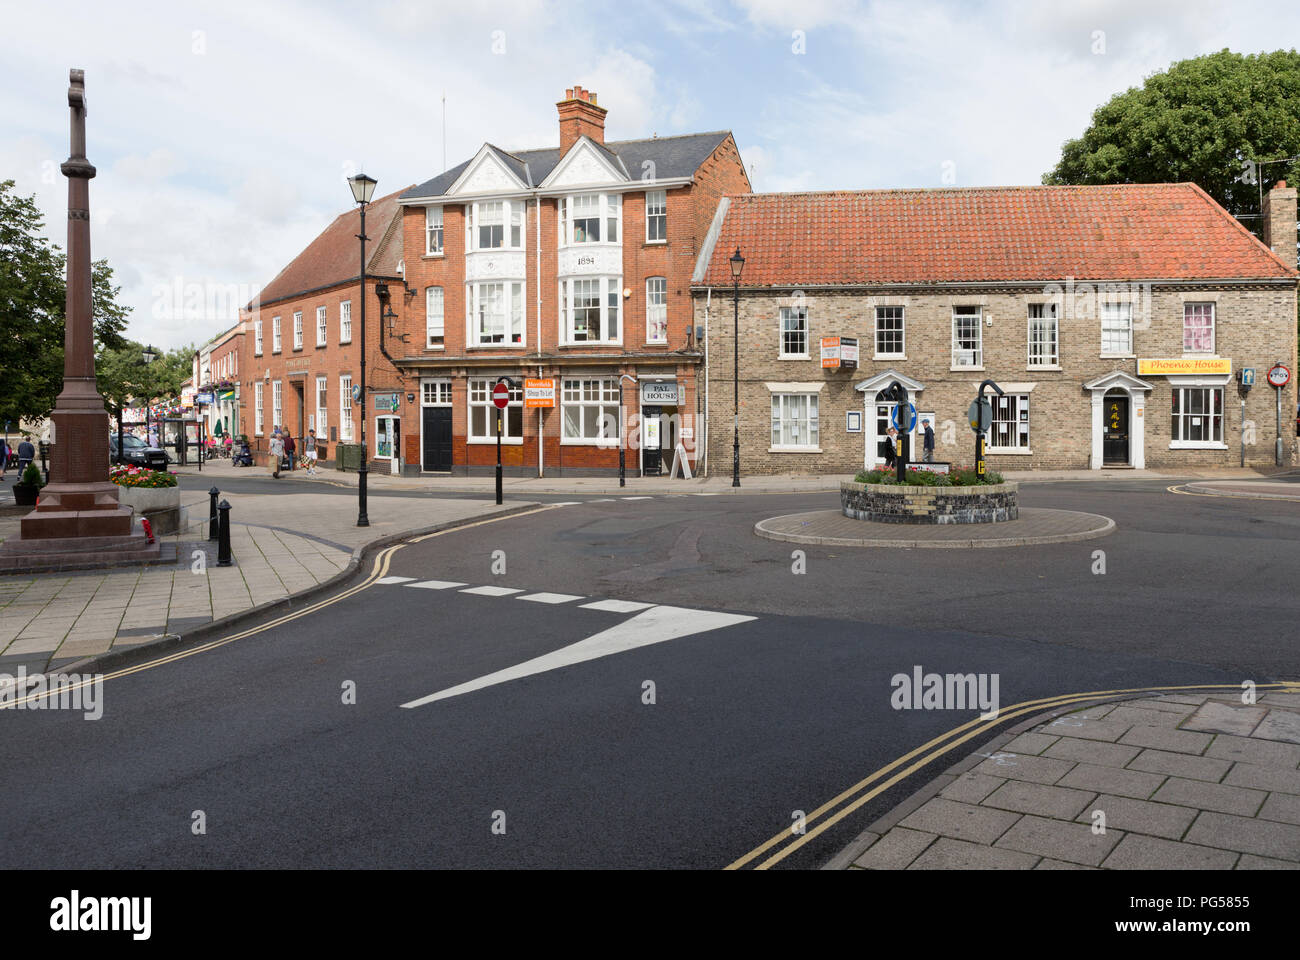 Shops and Post Office,Pal House, looking to King Street, left, from Market Place, Thetford. Unsharpened - Stock Image